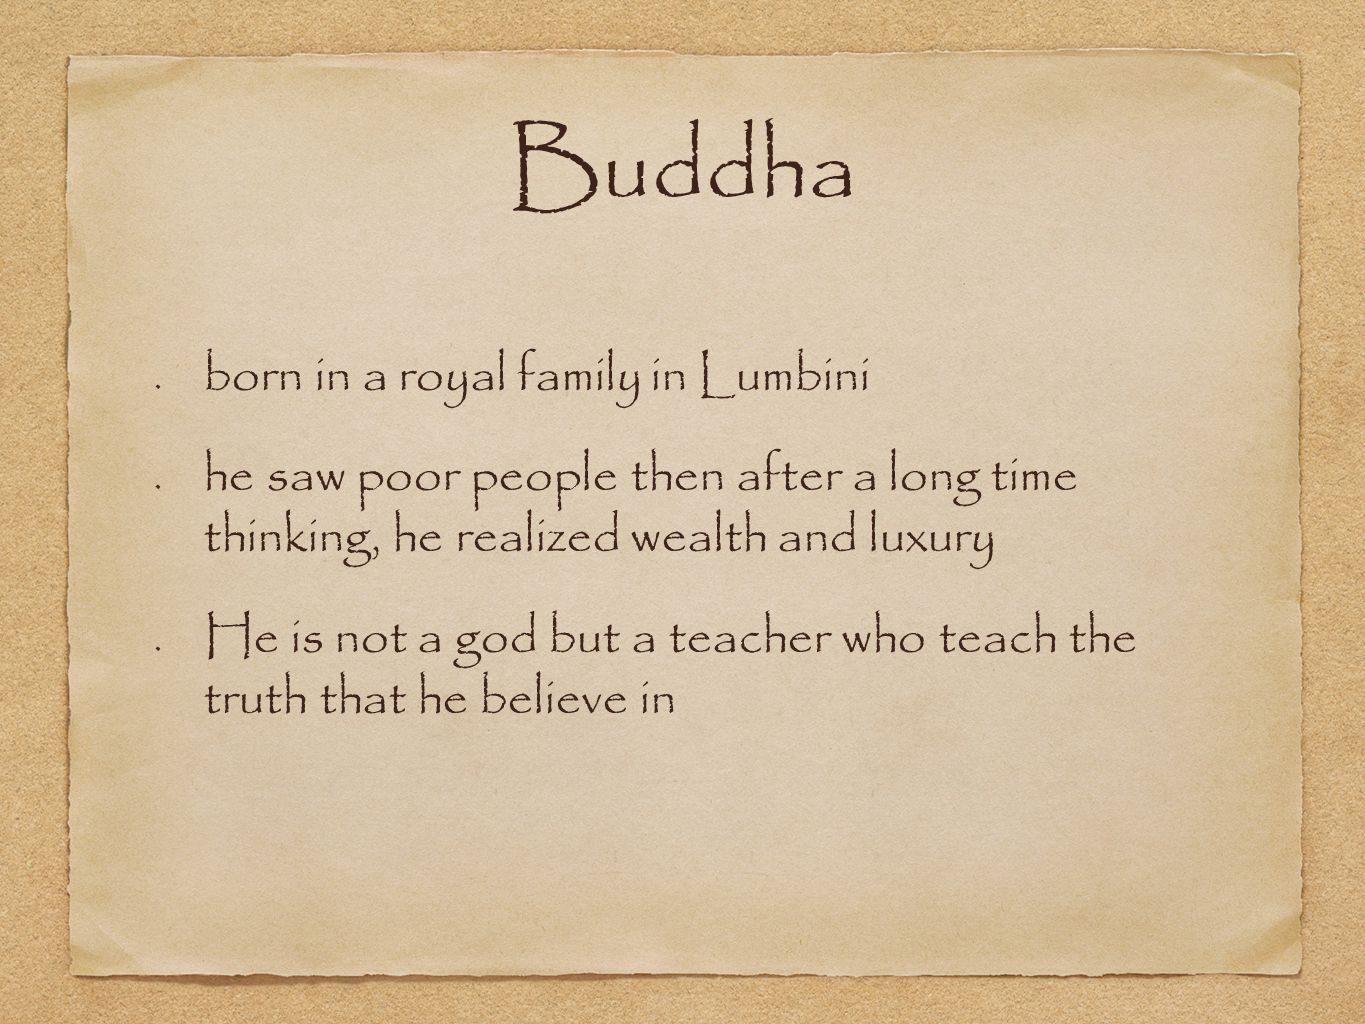 Buddha born in a royal family in Lumbini he saw poor people then after a long time thinking, he realized wealth and luxury He is not a god but a teacher who teach the truth that he believe in